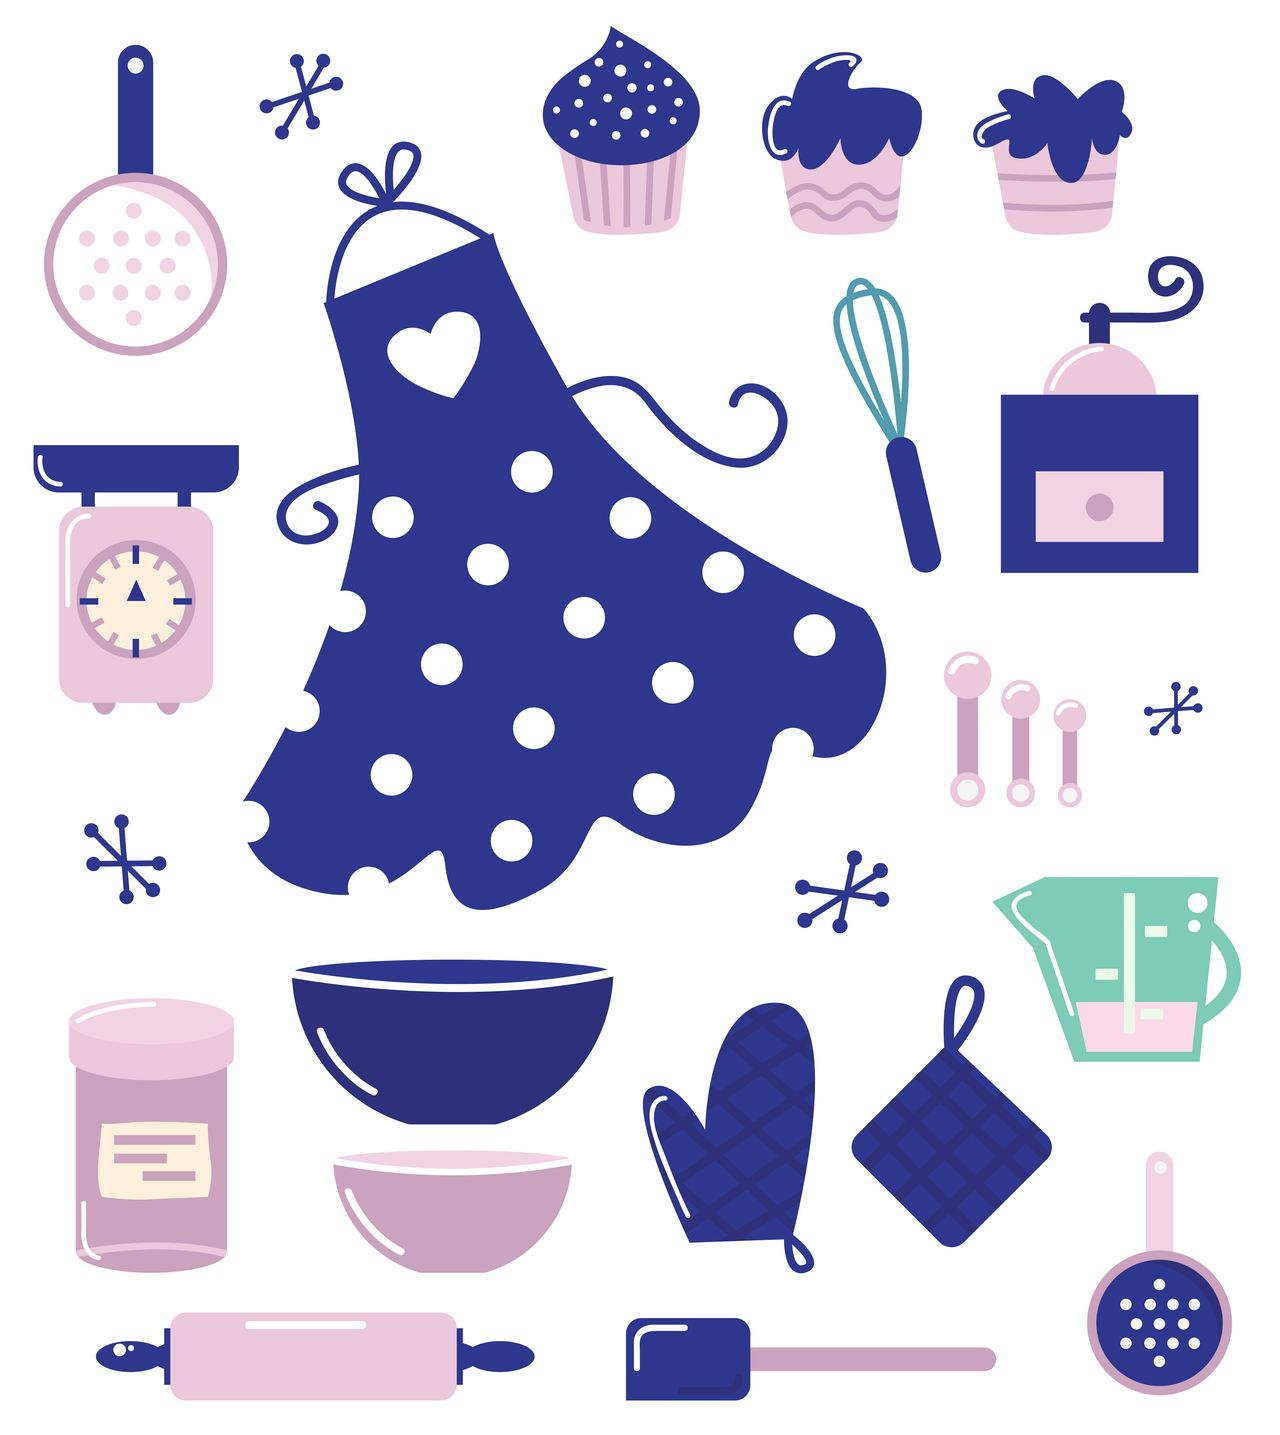 Unique art illustration : Simple Kitchen drawing. Original art / Perfect for marketing segment Art Artforsale Authors Close-up Coffee - Drink Creativeshop Dots Graphic Illustration Kitchen Kitty Lifestyles Muffins No People Pencil Drawing S Six Sixties Stars Woman Womanly